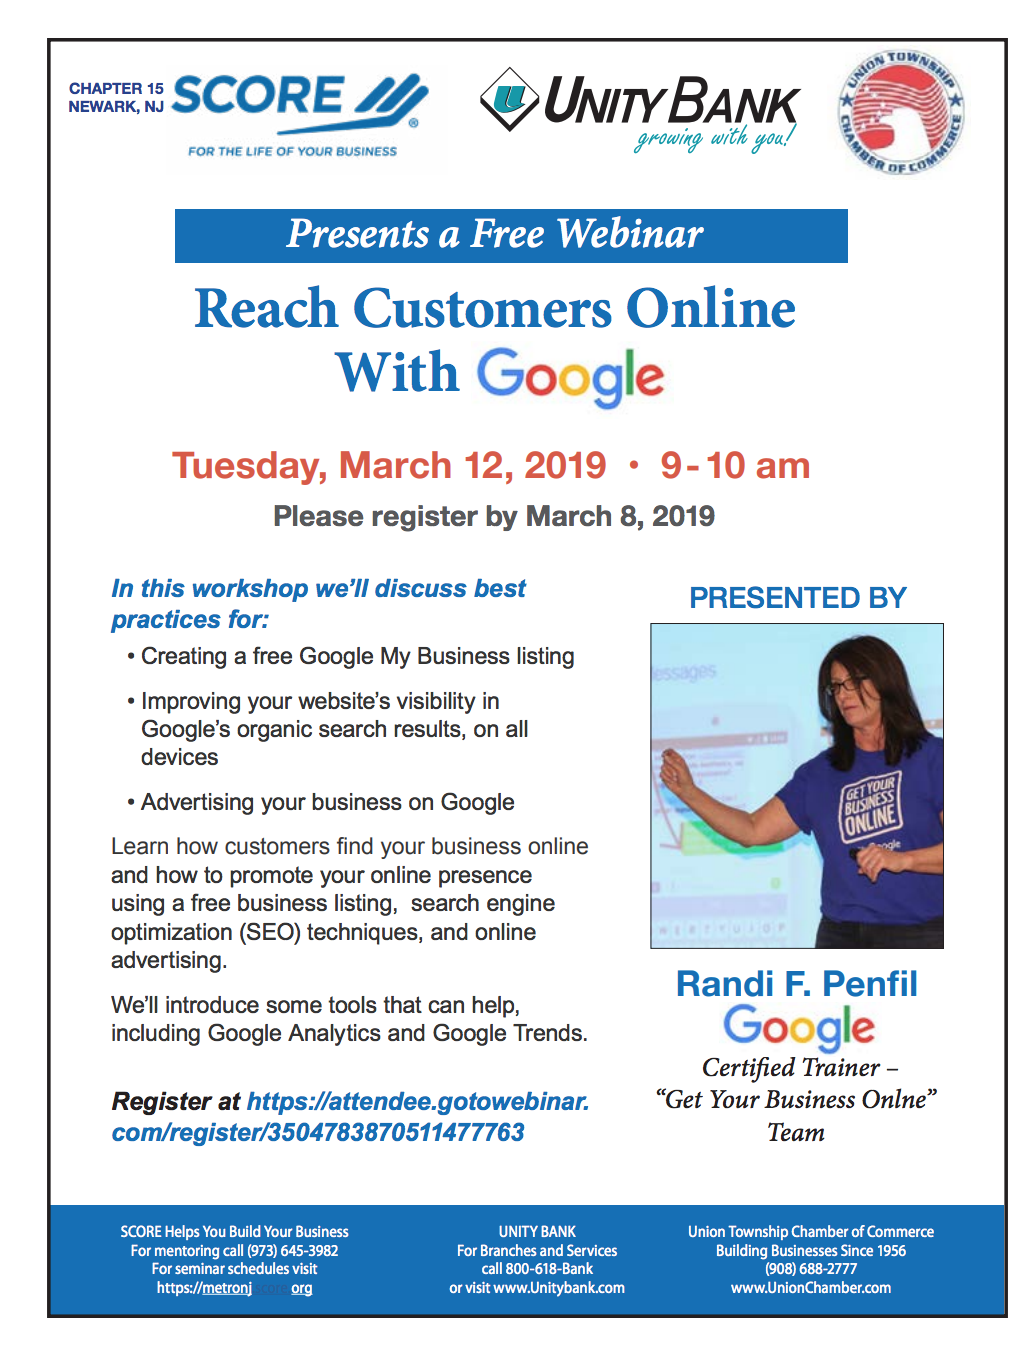 Free Webinar: Reach Customers Online with Google - TAPinto